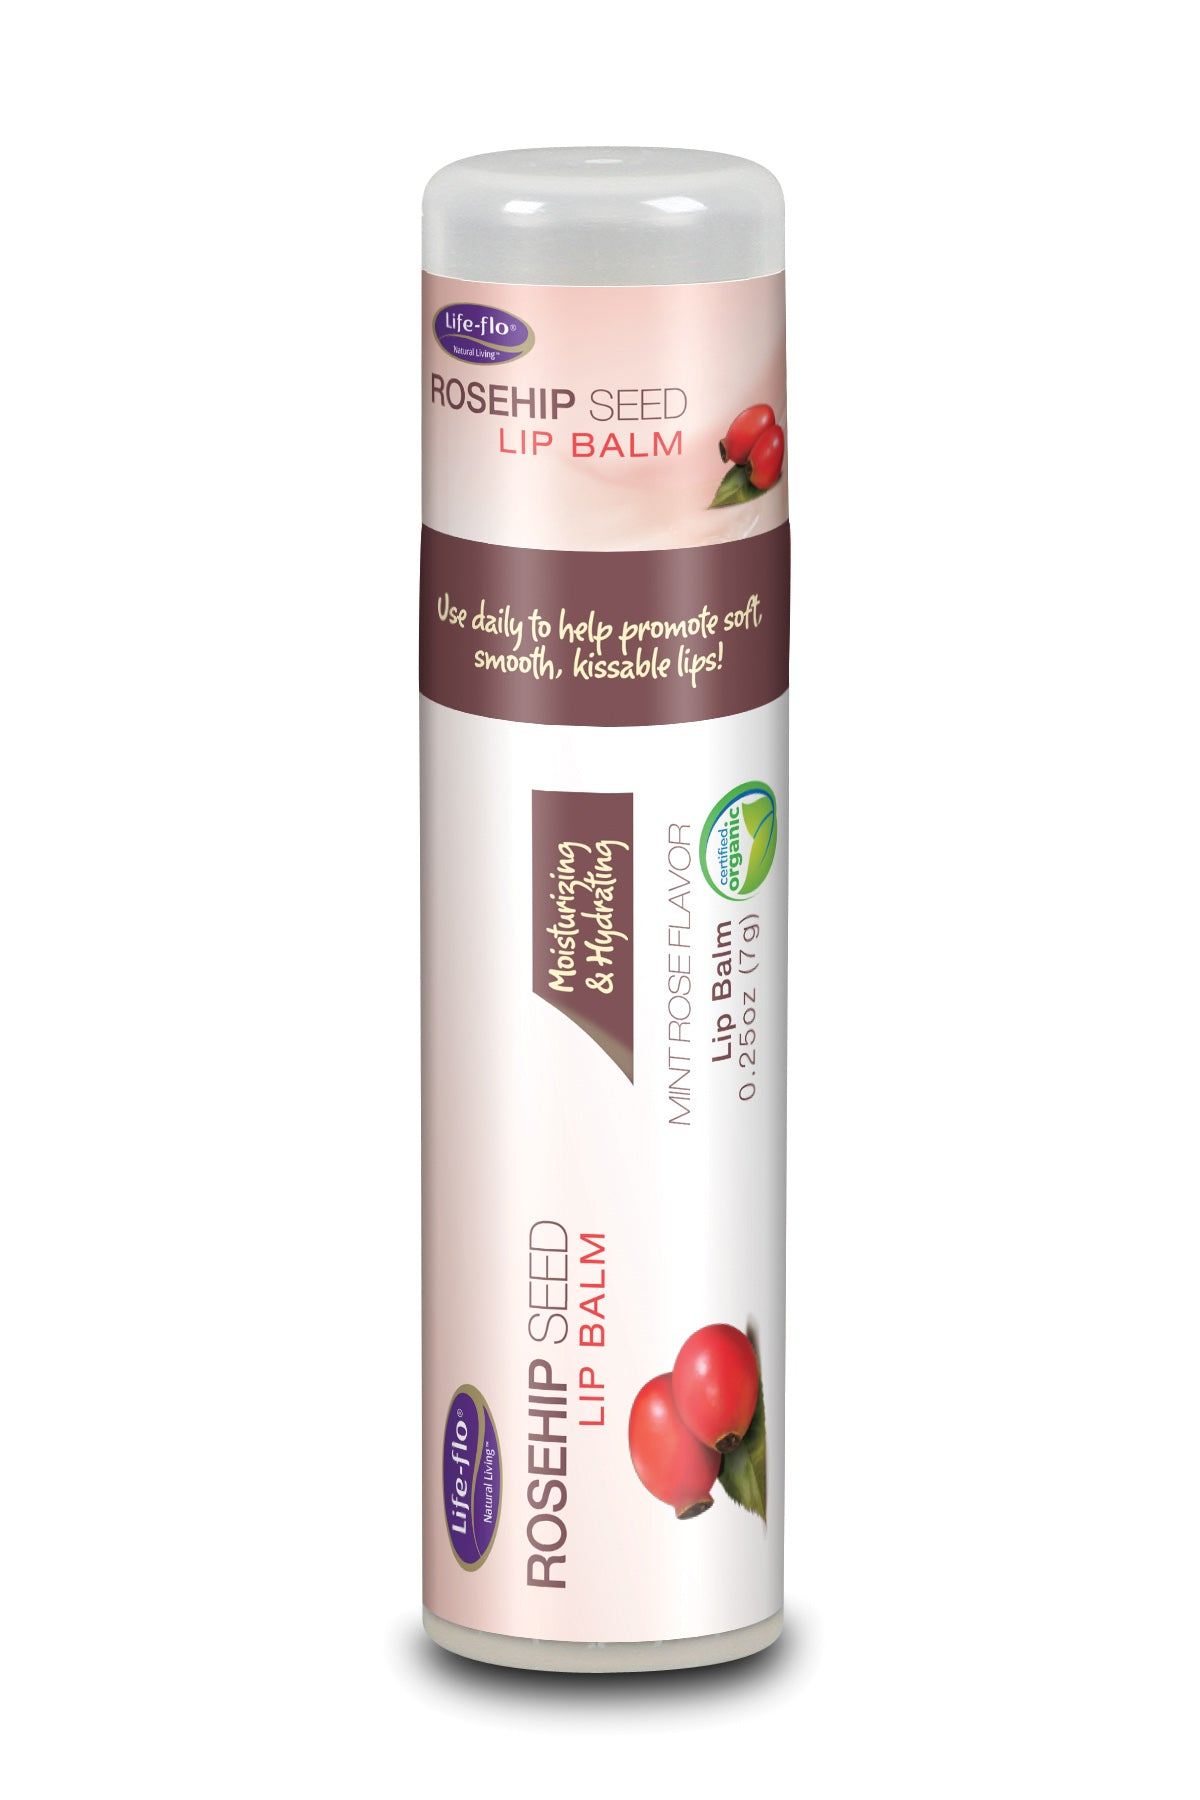 Rosehip Seed Lip Balm - 0.25 ounces